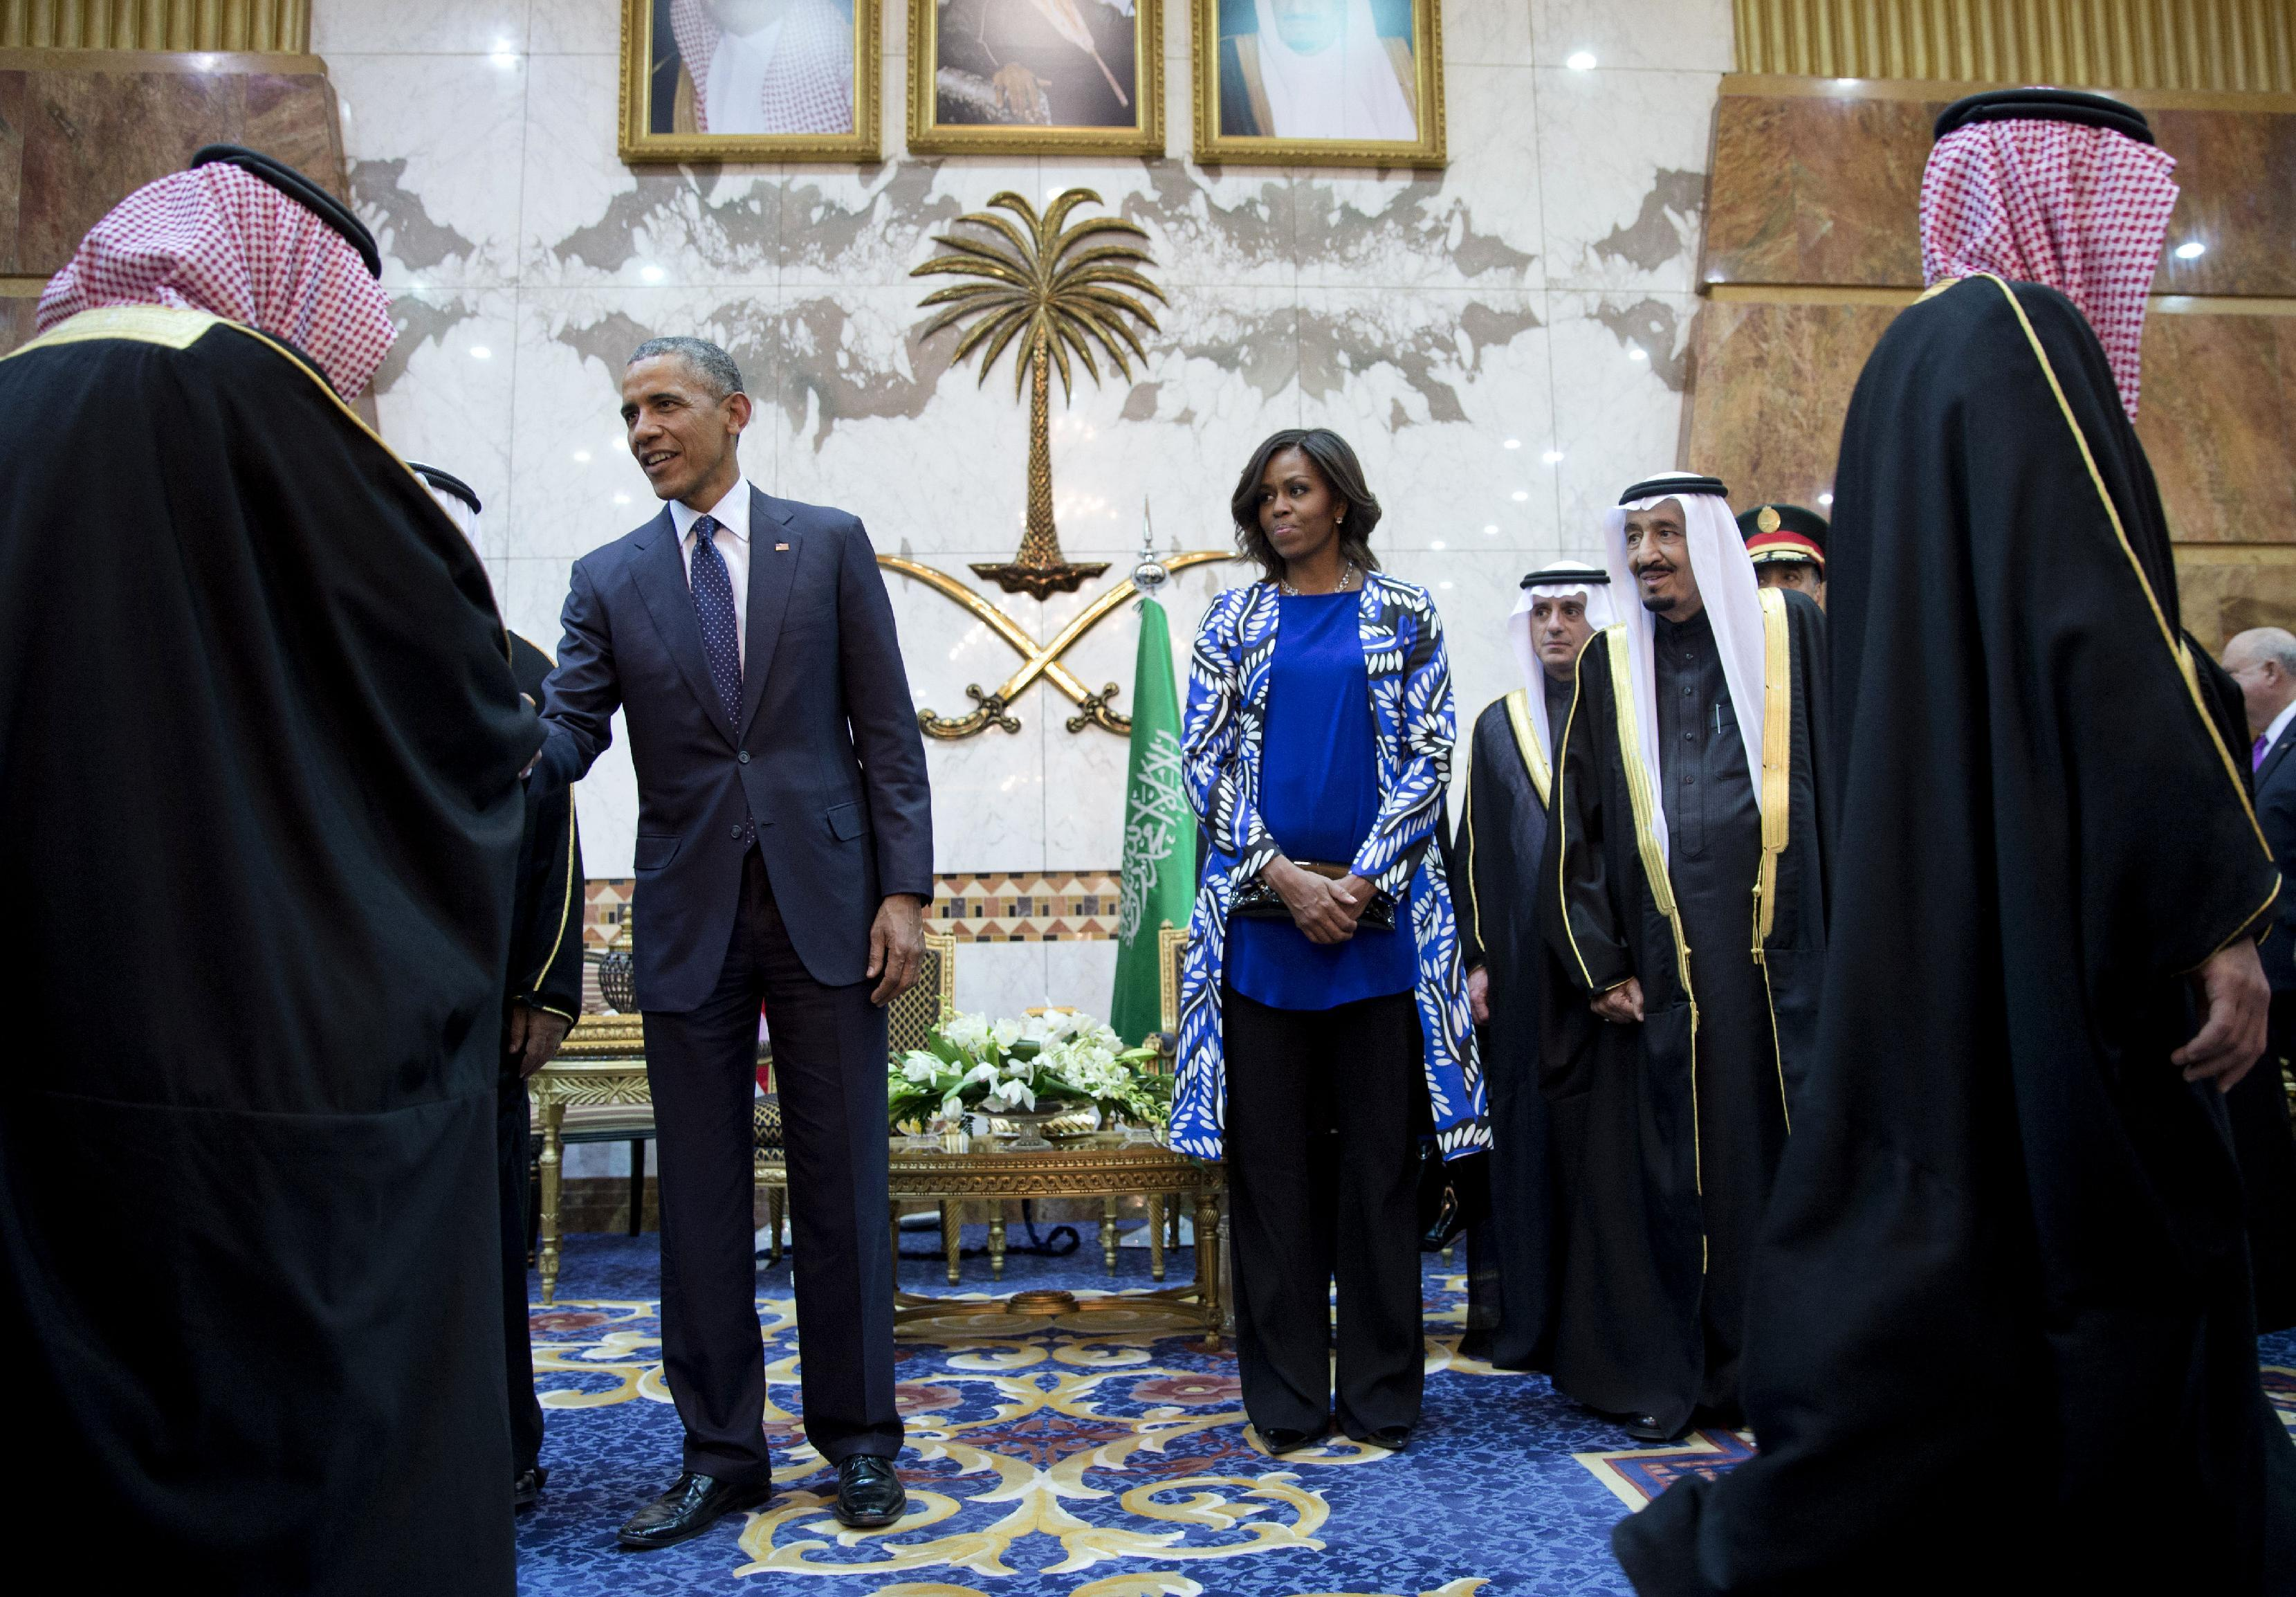 Michelle Obama navigates limits on women in Saudi Arabia